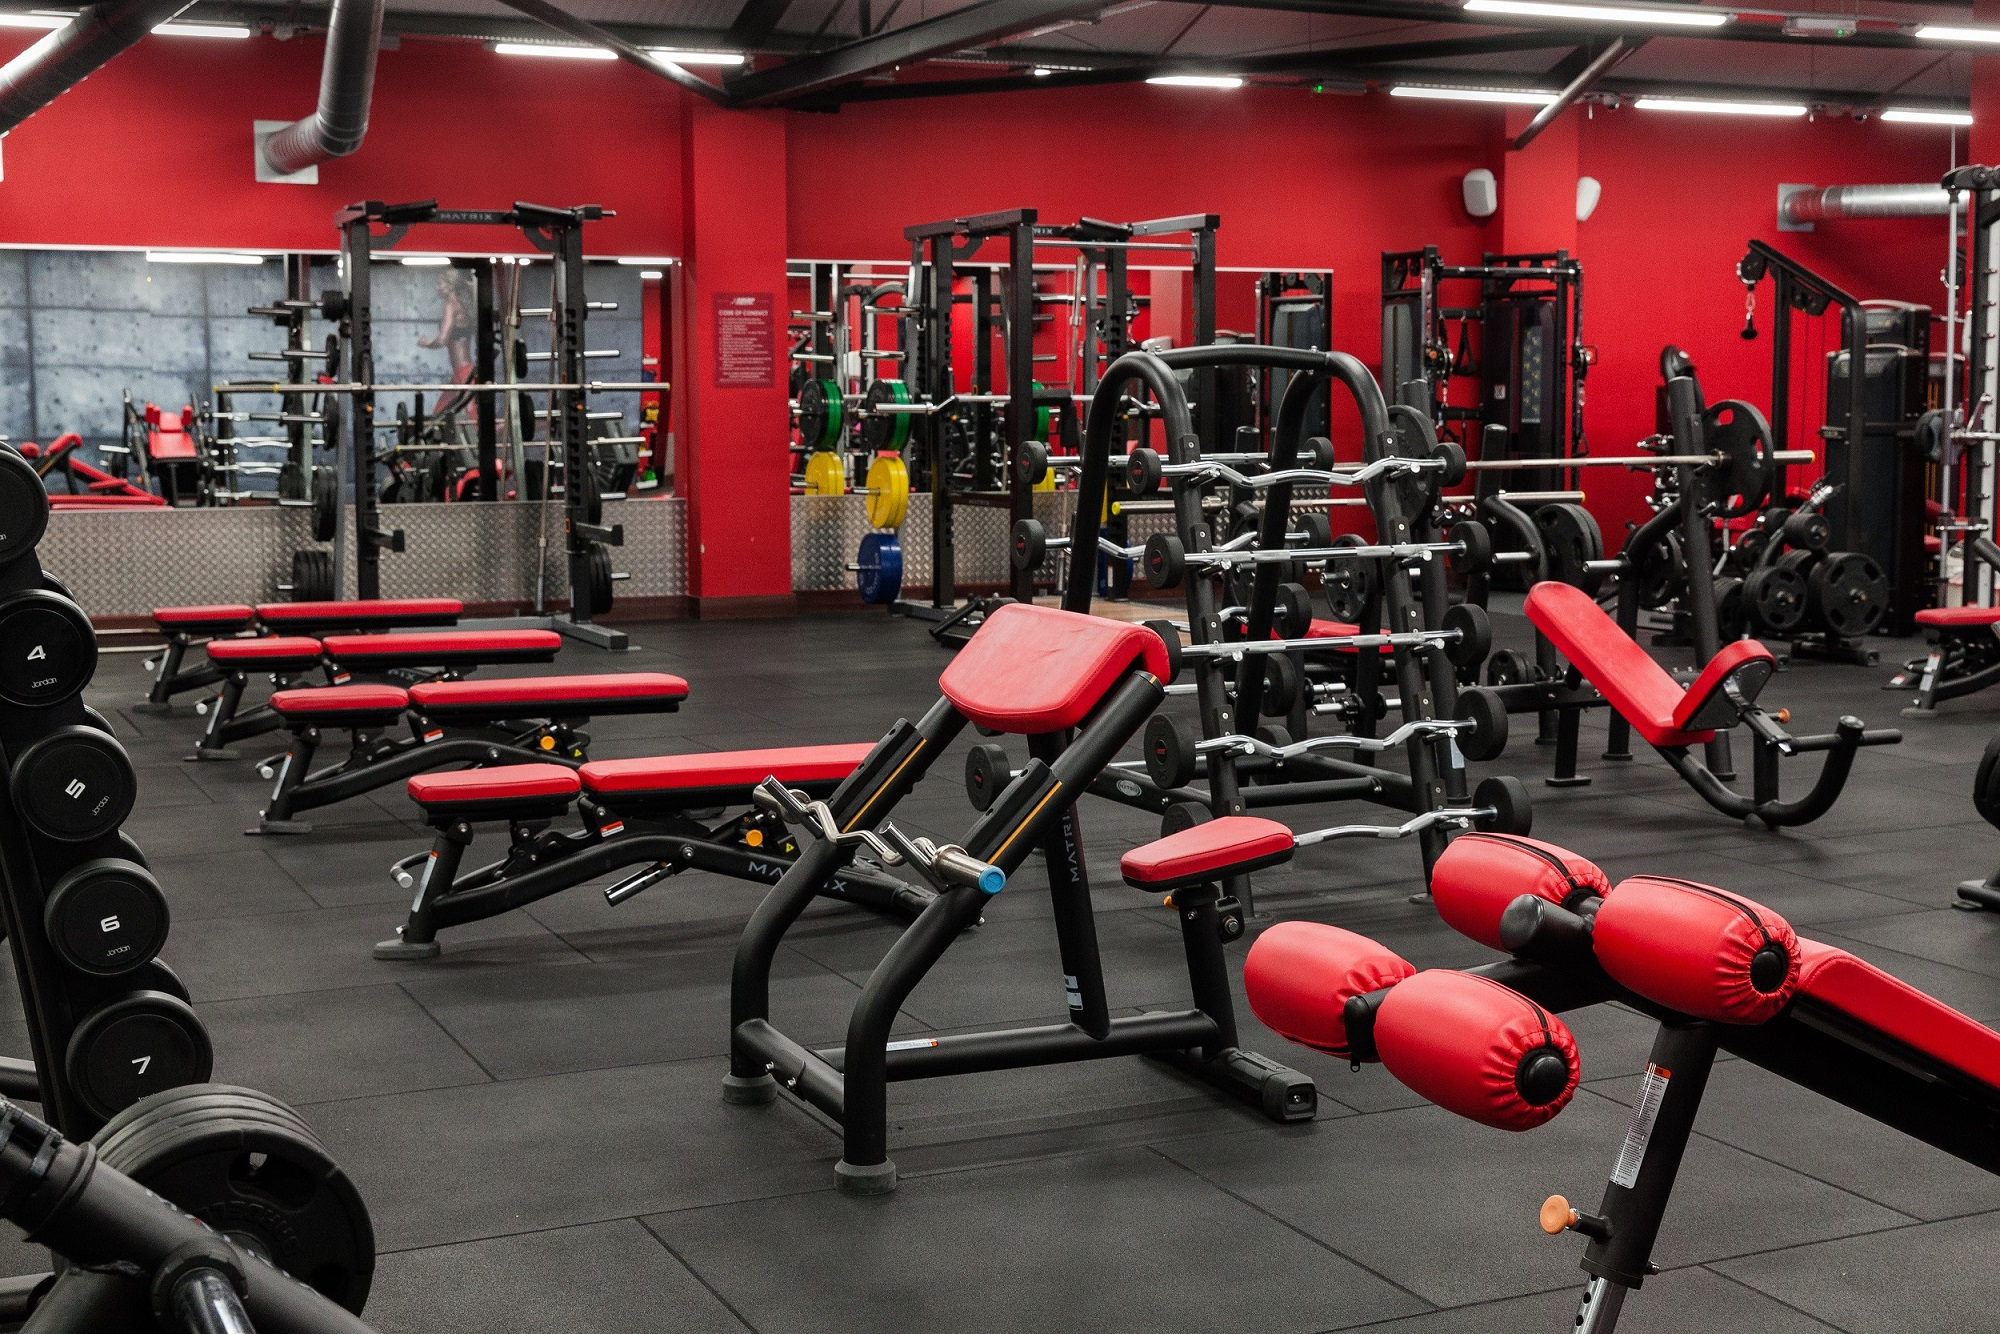 Worldwide gym chain snaps up new premises in Staffordshire